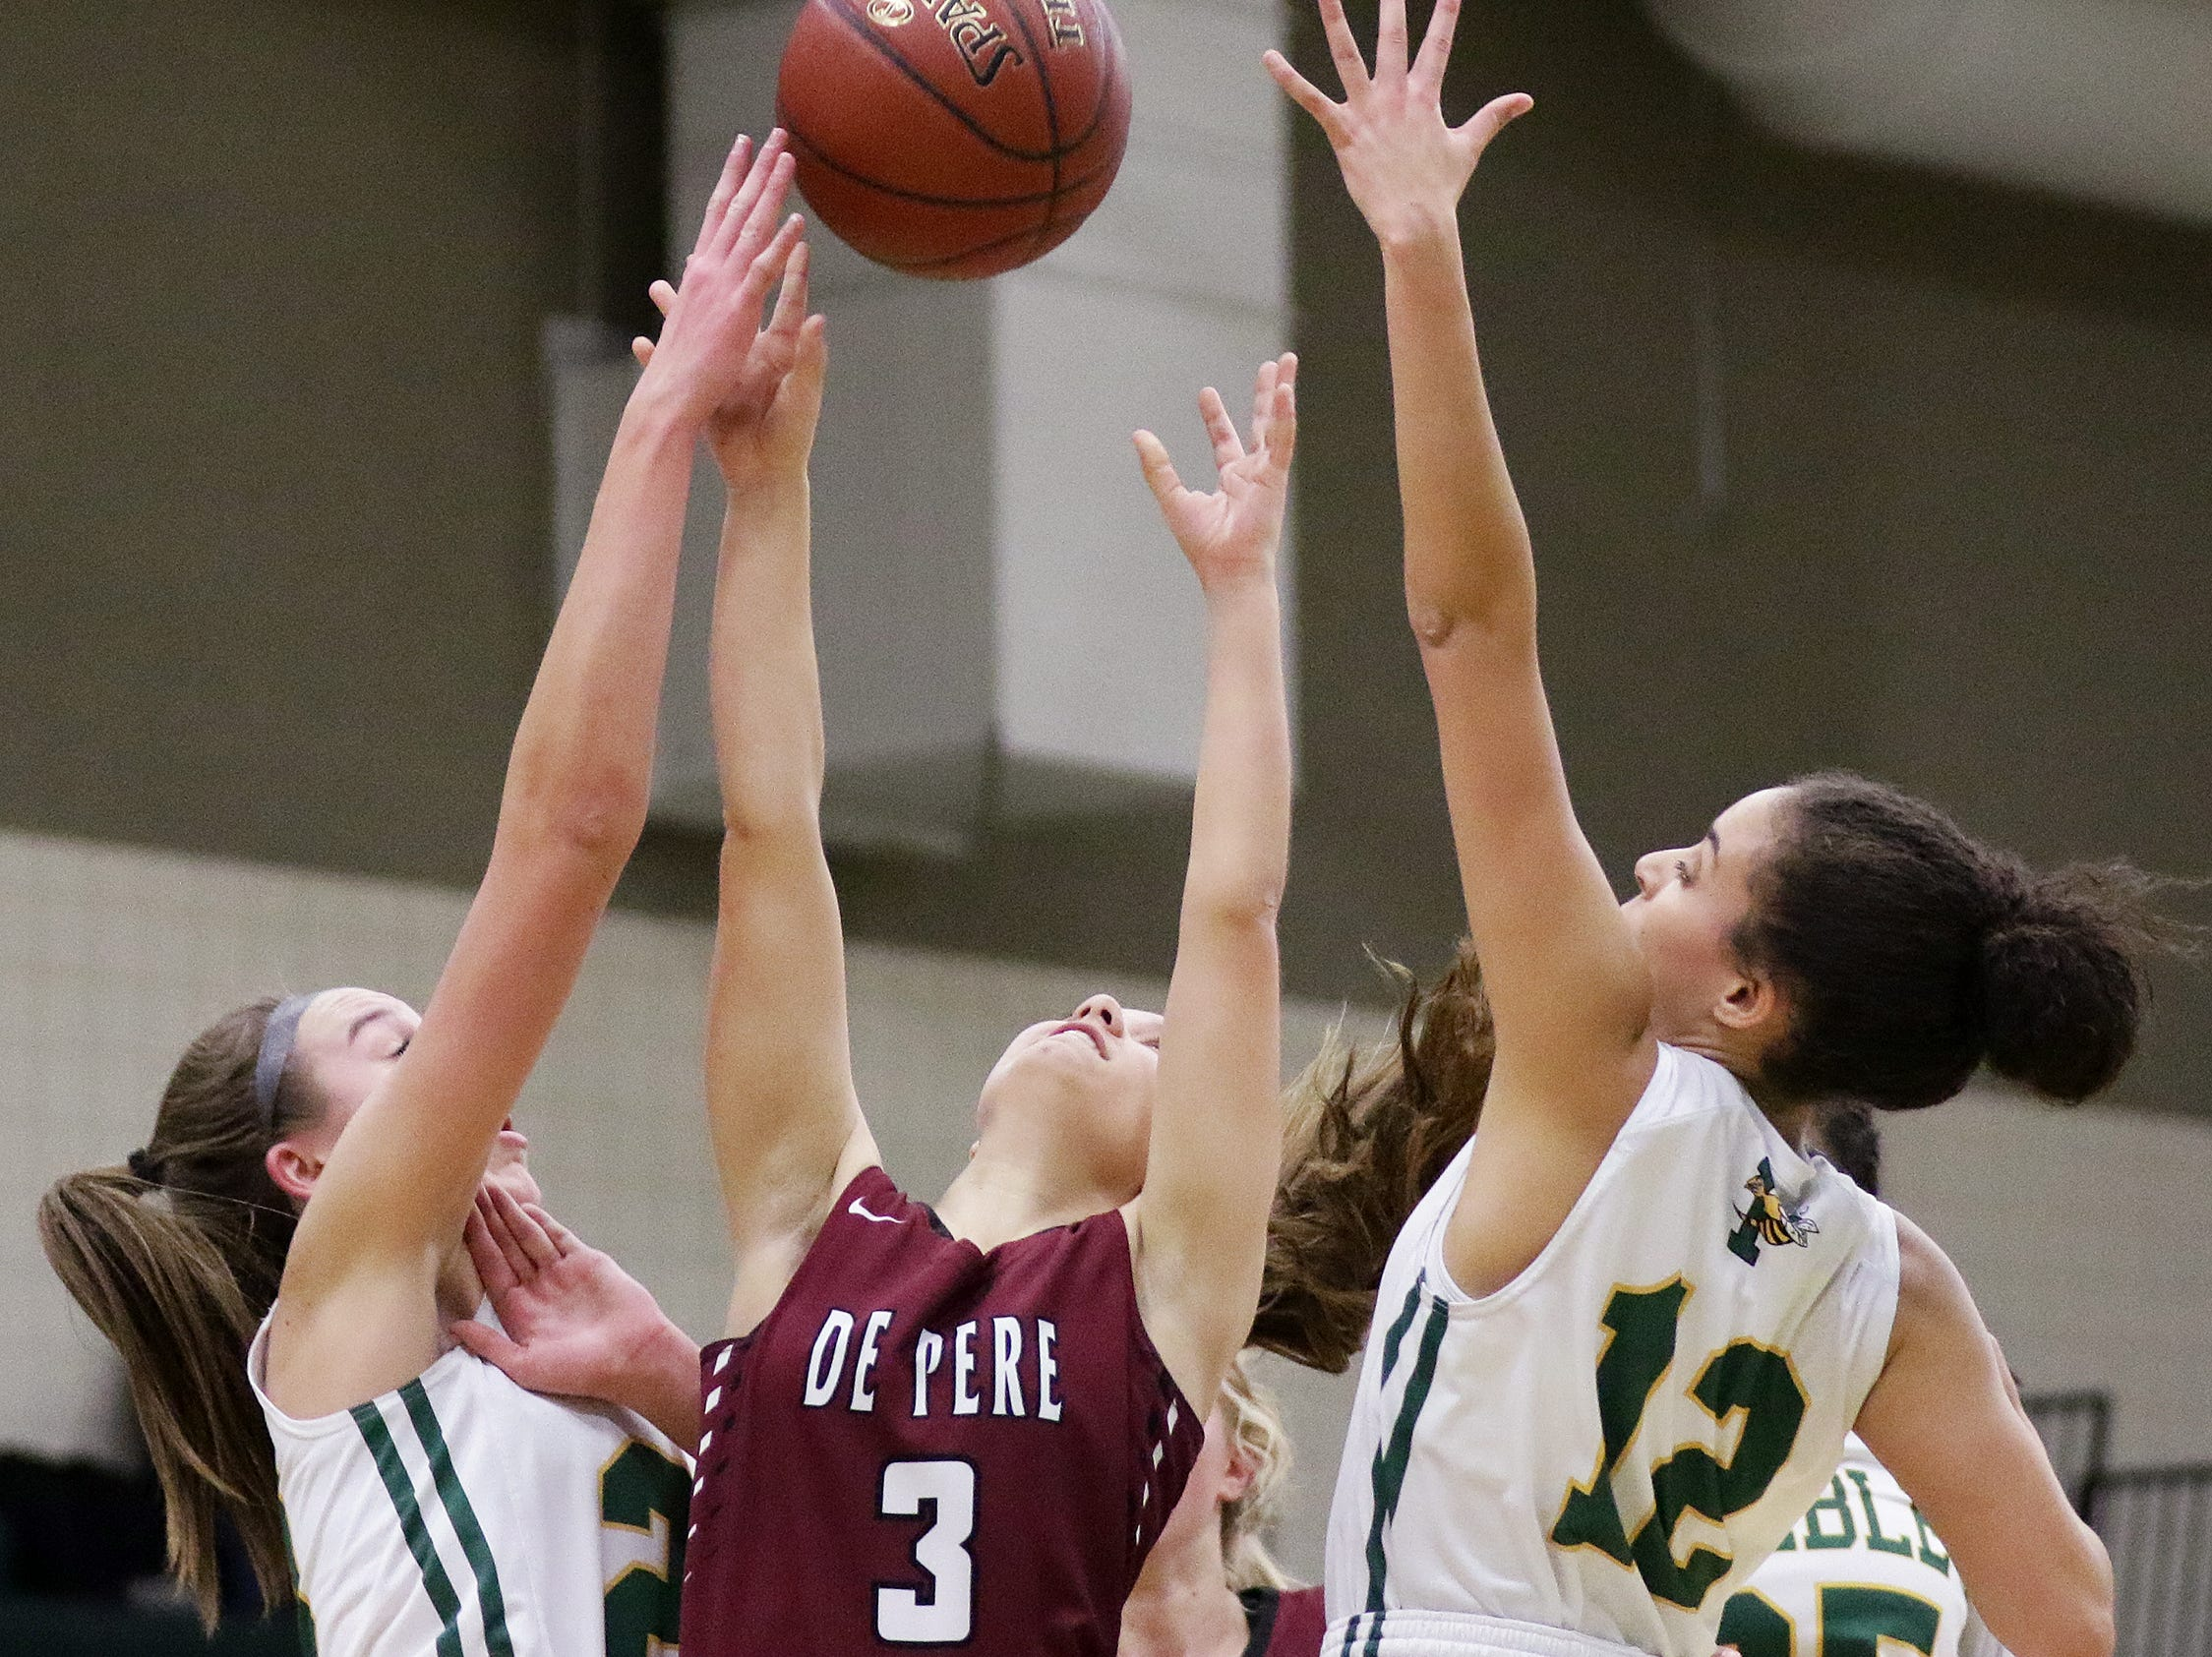 De Pere's Sophie Hubbard (3) has a shot blocked by Green Bay Preble's Carley Duffney (20) in a girls basketball game at Preble high school on Tuesday, January 8, 2019 in Green Bay, Wis.